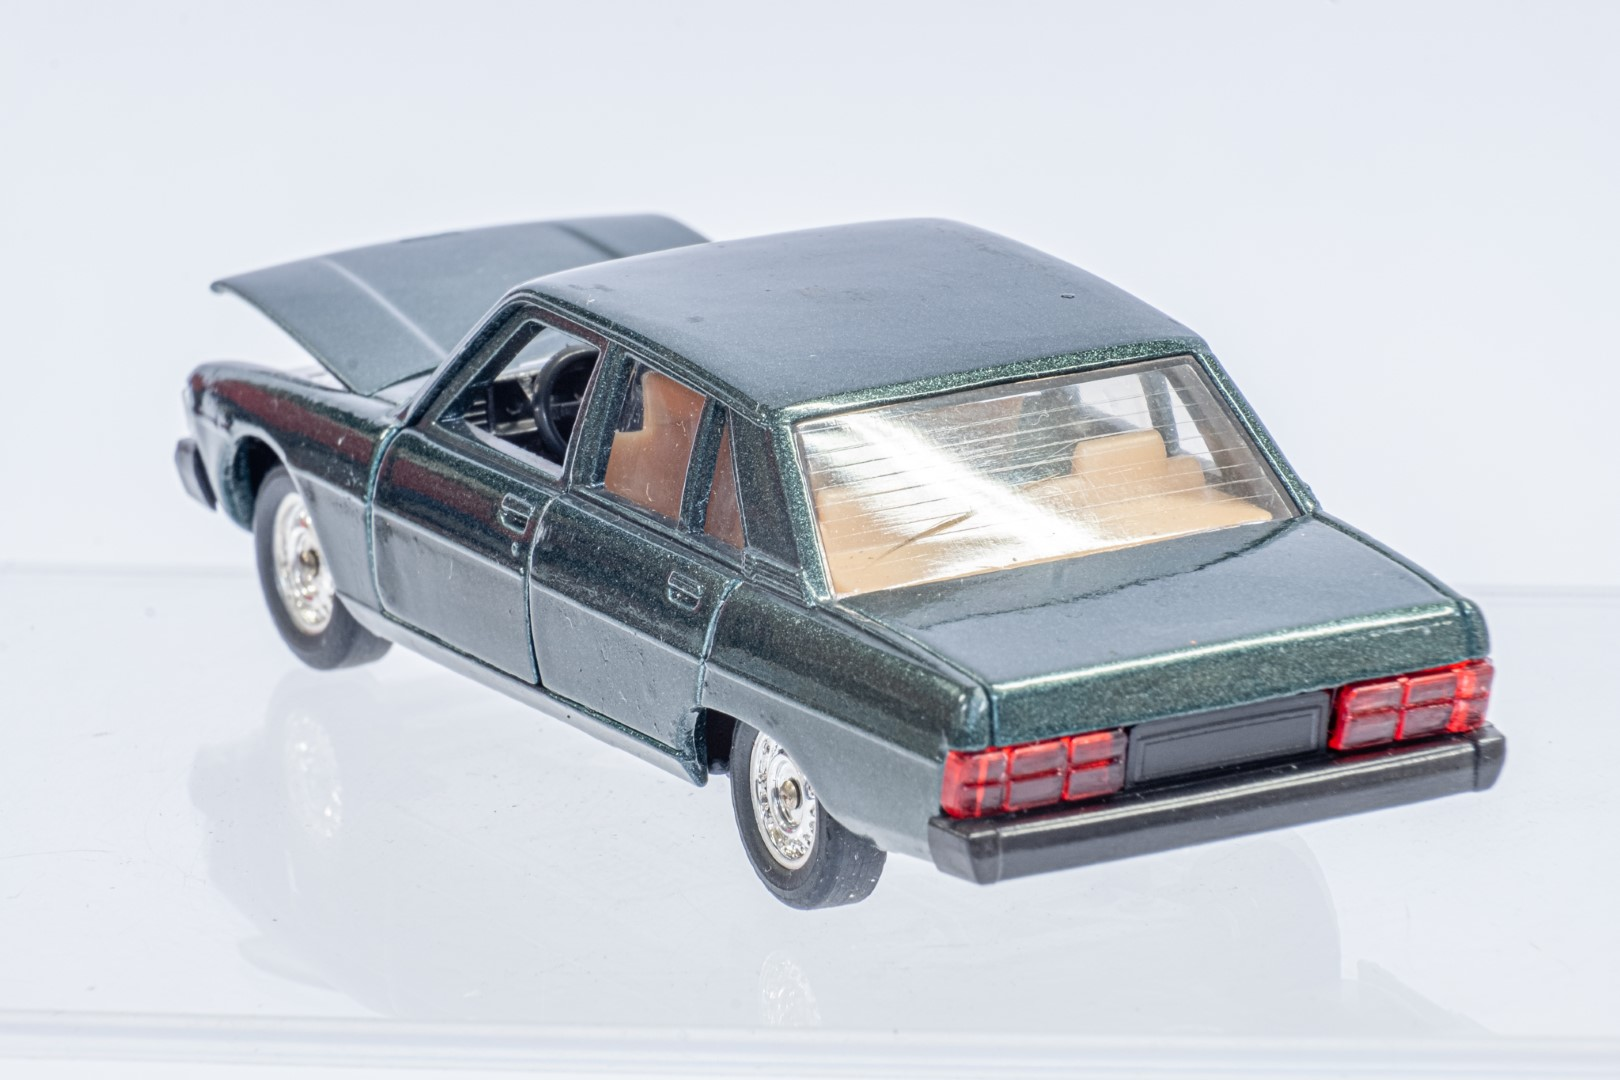 Solido 40 Peugeot 604 - Image 6 of 8